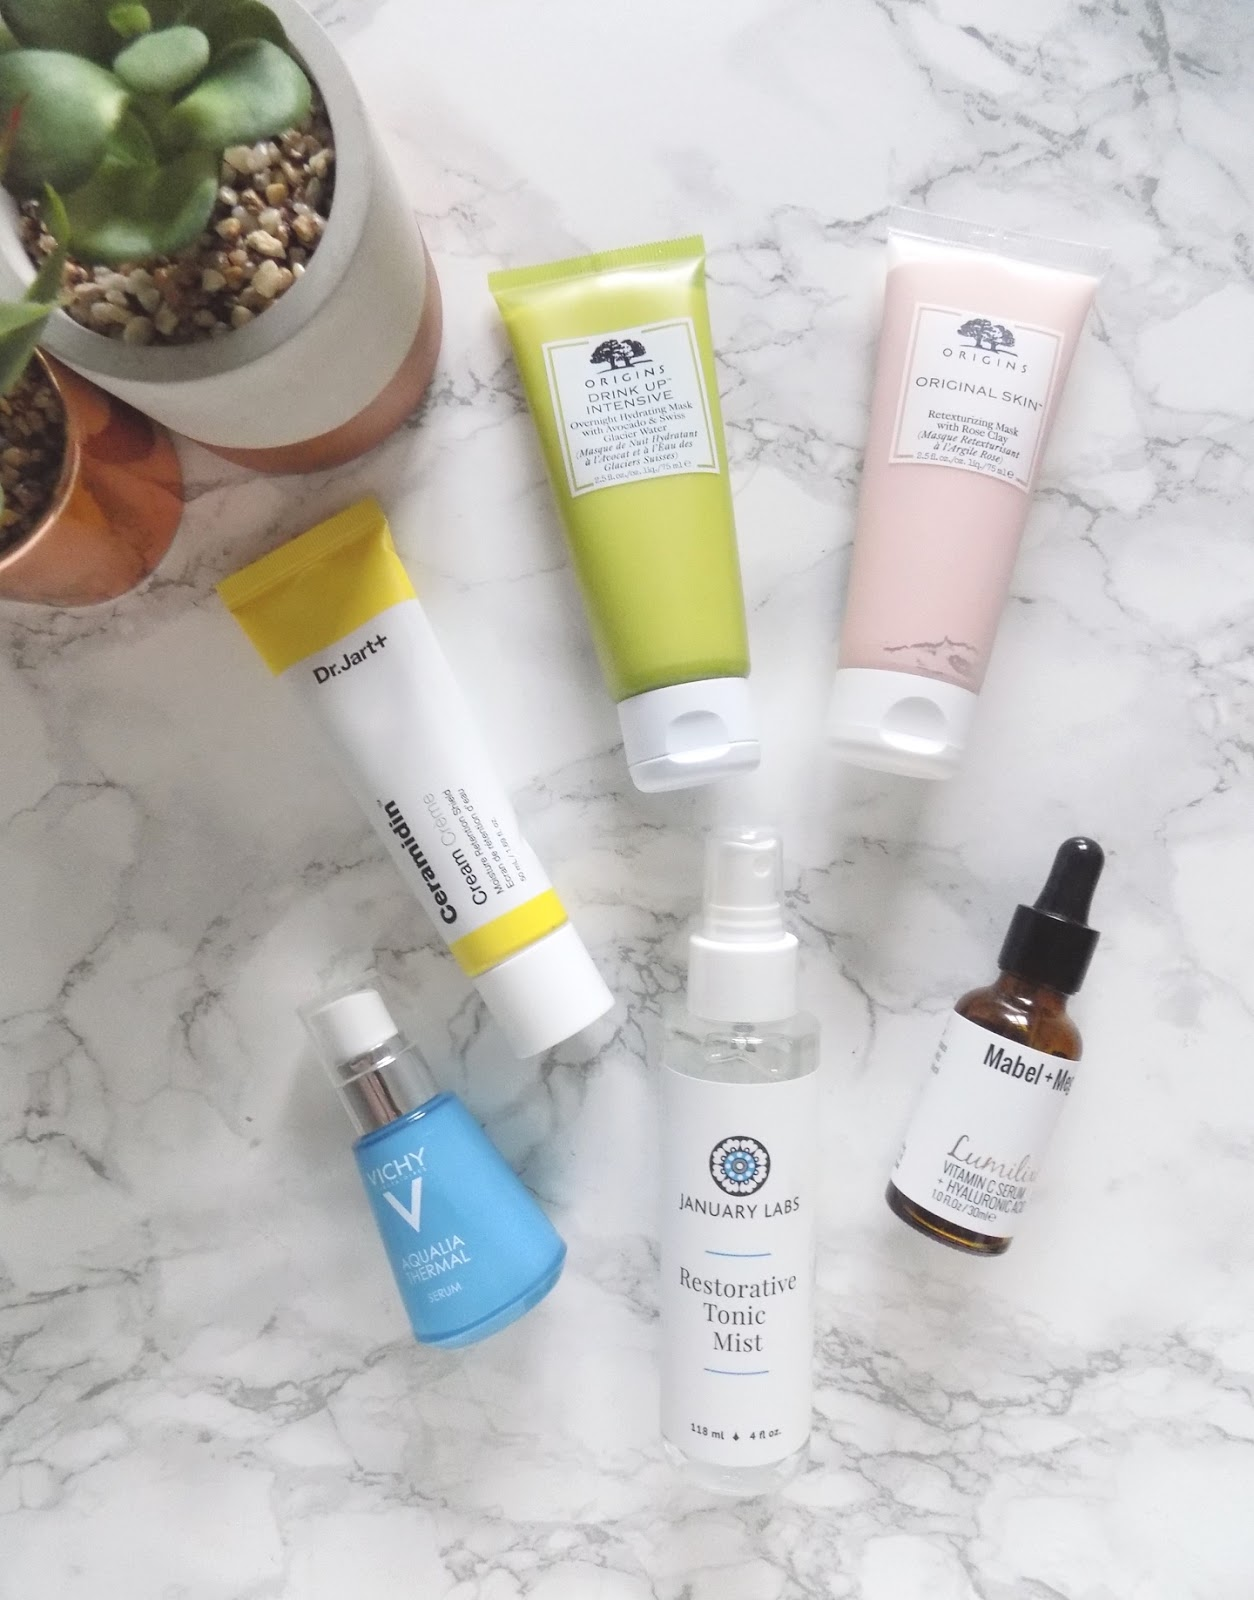 skincare essentials dr jart origins vichy january labs mabel and meg